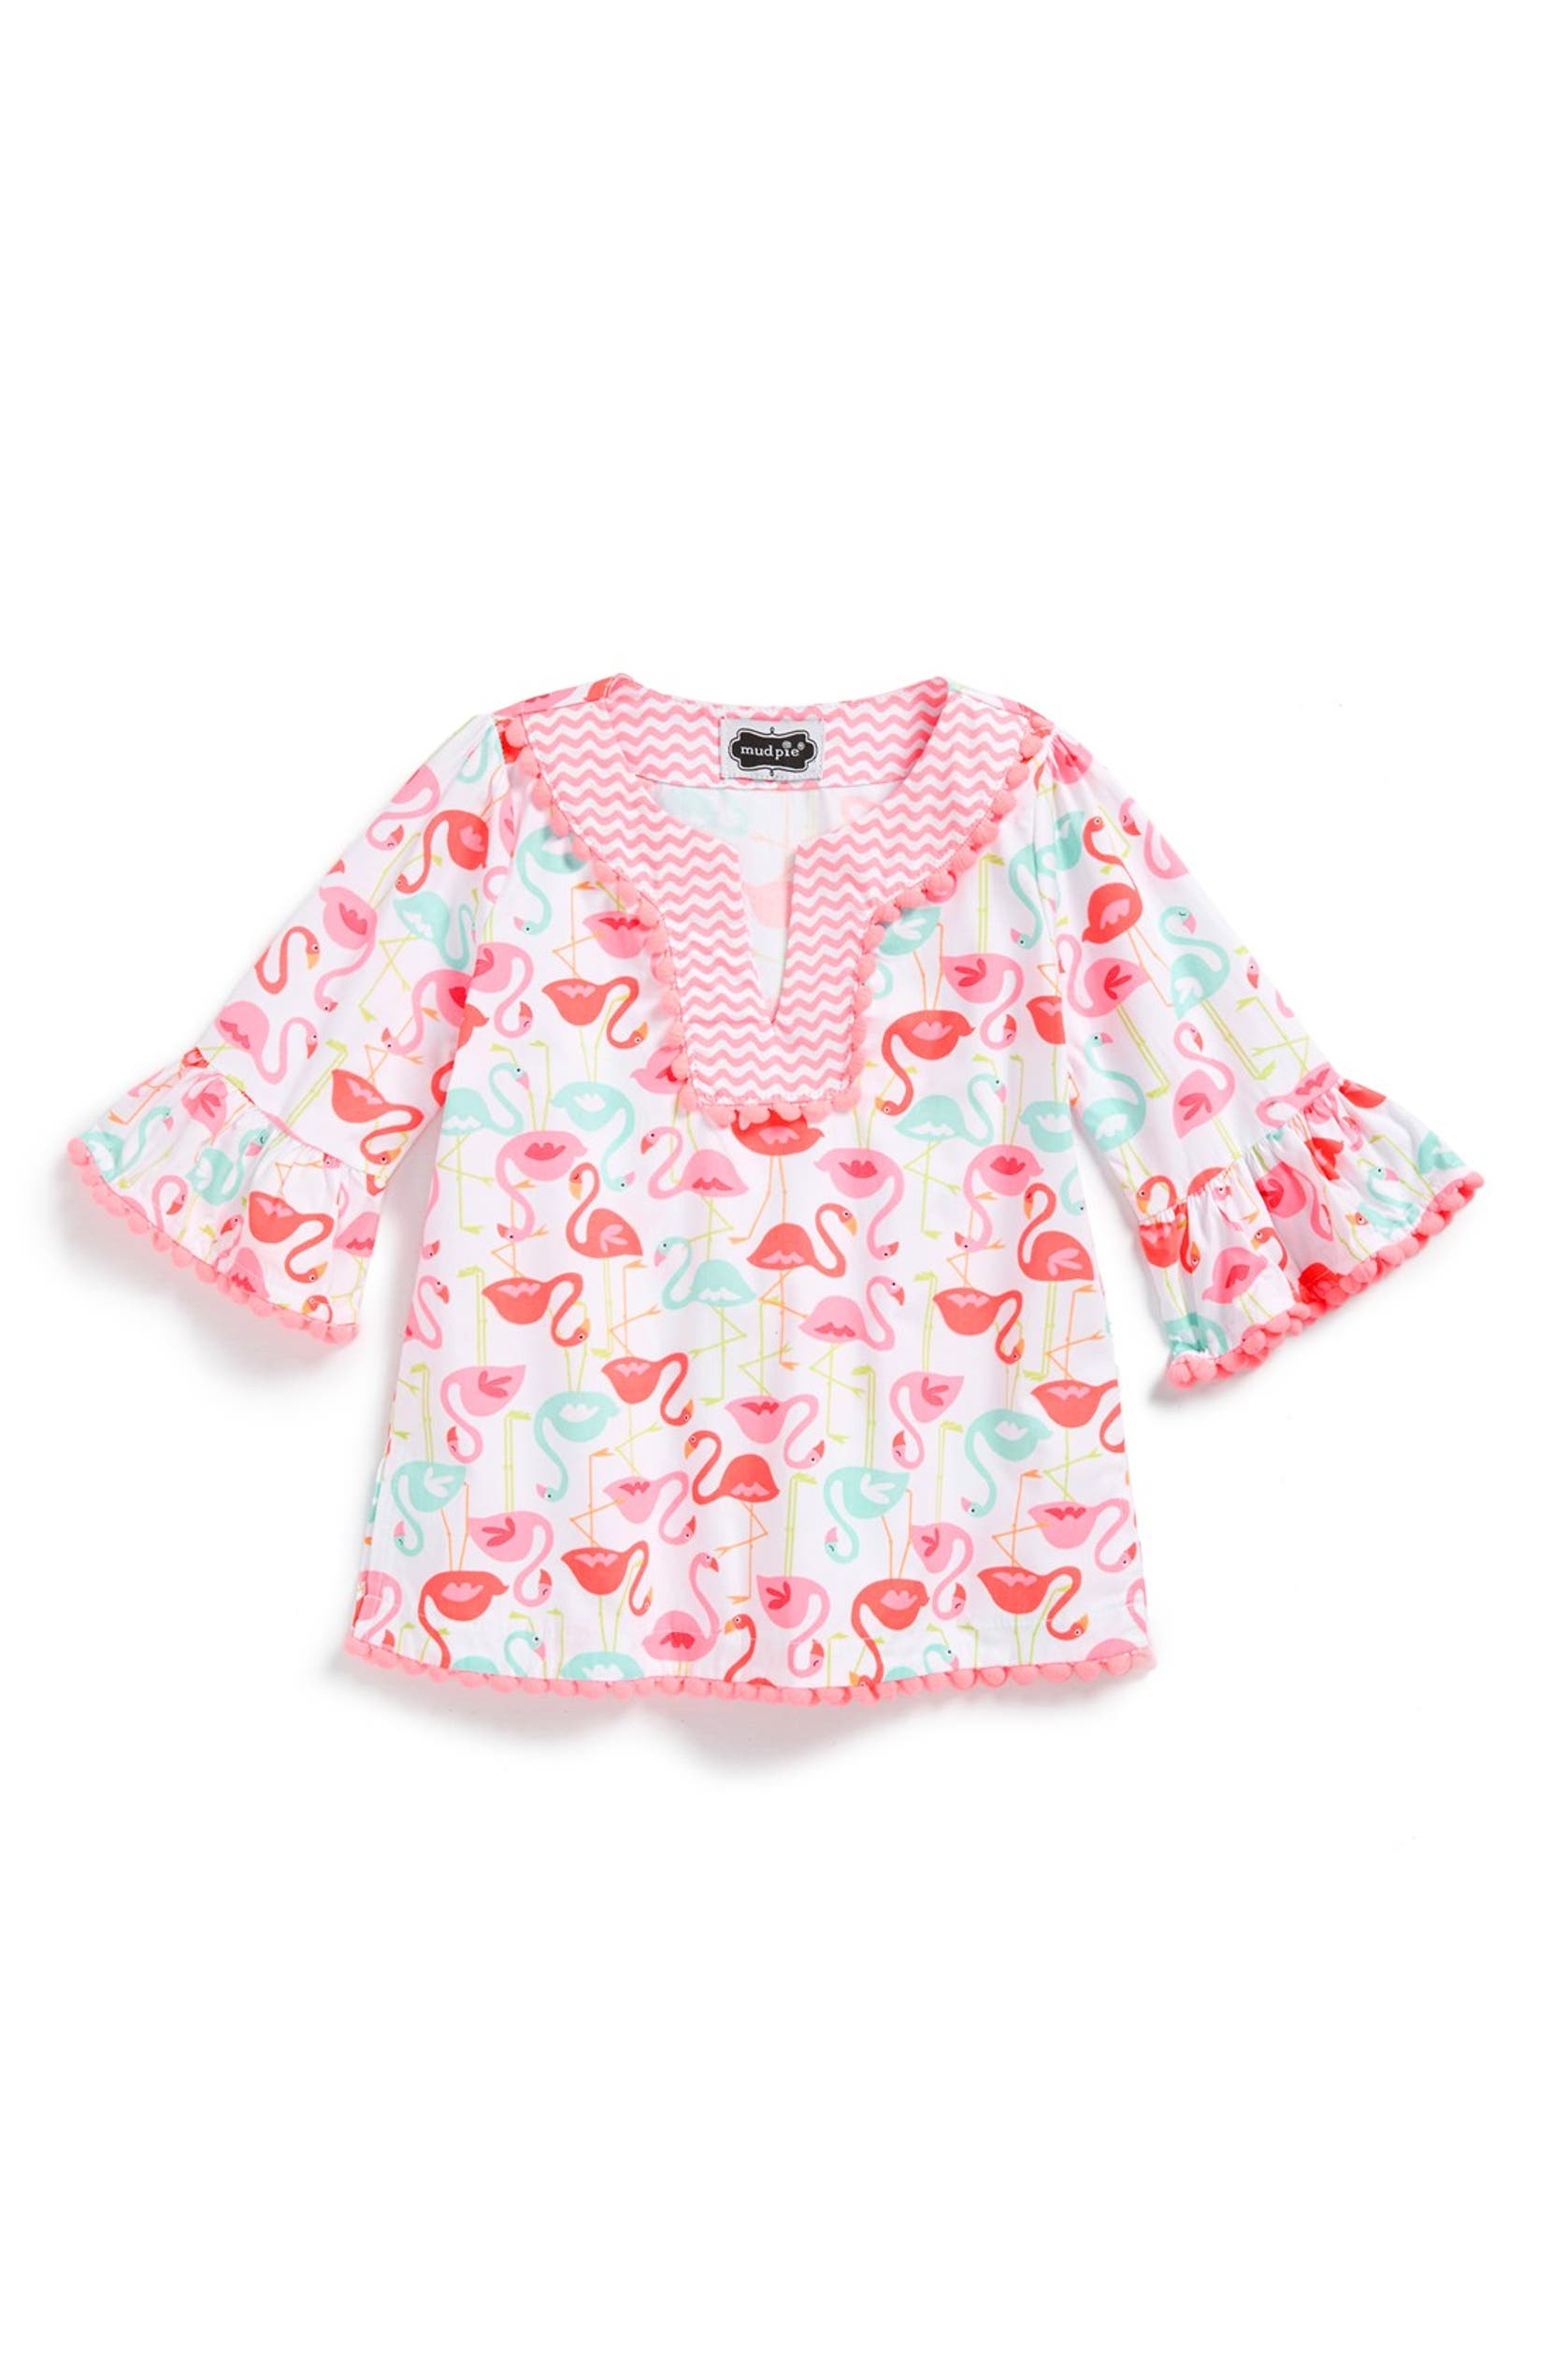 096ad16089 Mud Pie 'Flamingo' Tunic Cover-Up (Baby Girls) | Nordstrom